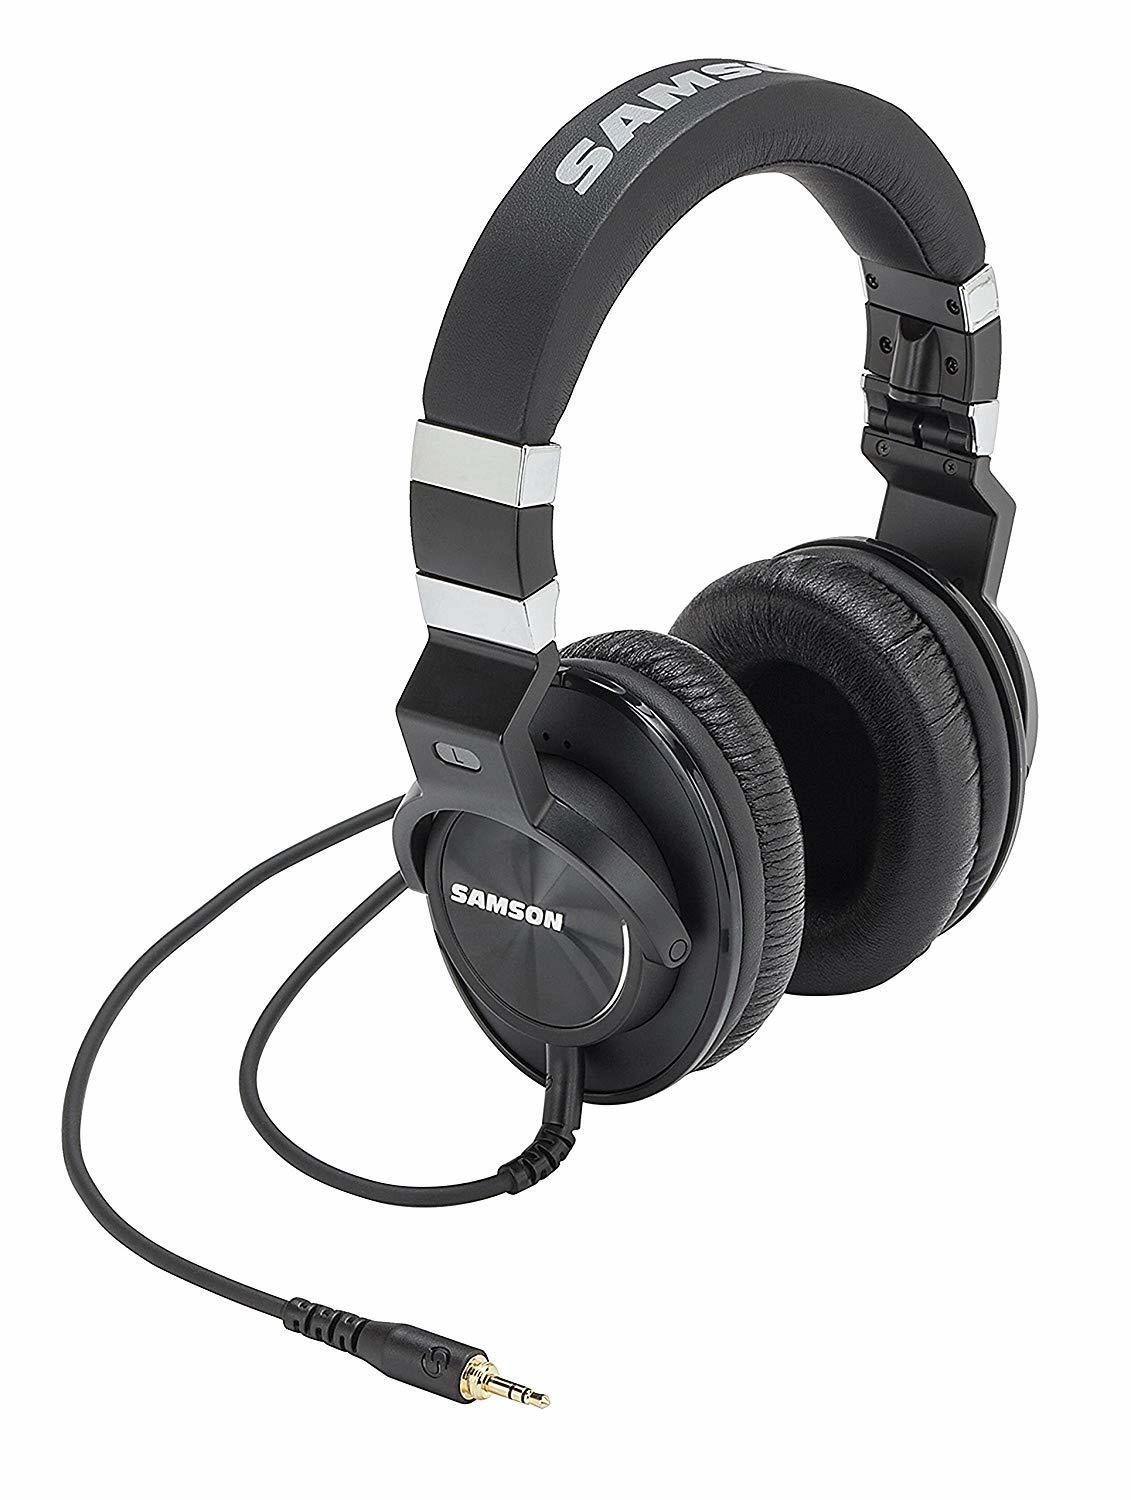 Samson Z55 Closed Back Over-Ear Professional Studio Reference Headphones Recording Mixing Audiophile Monitor Music